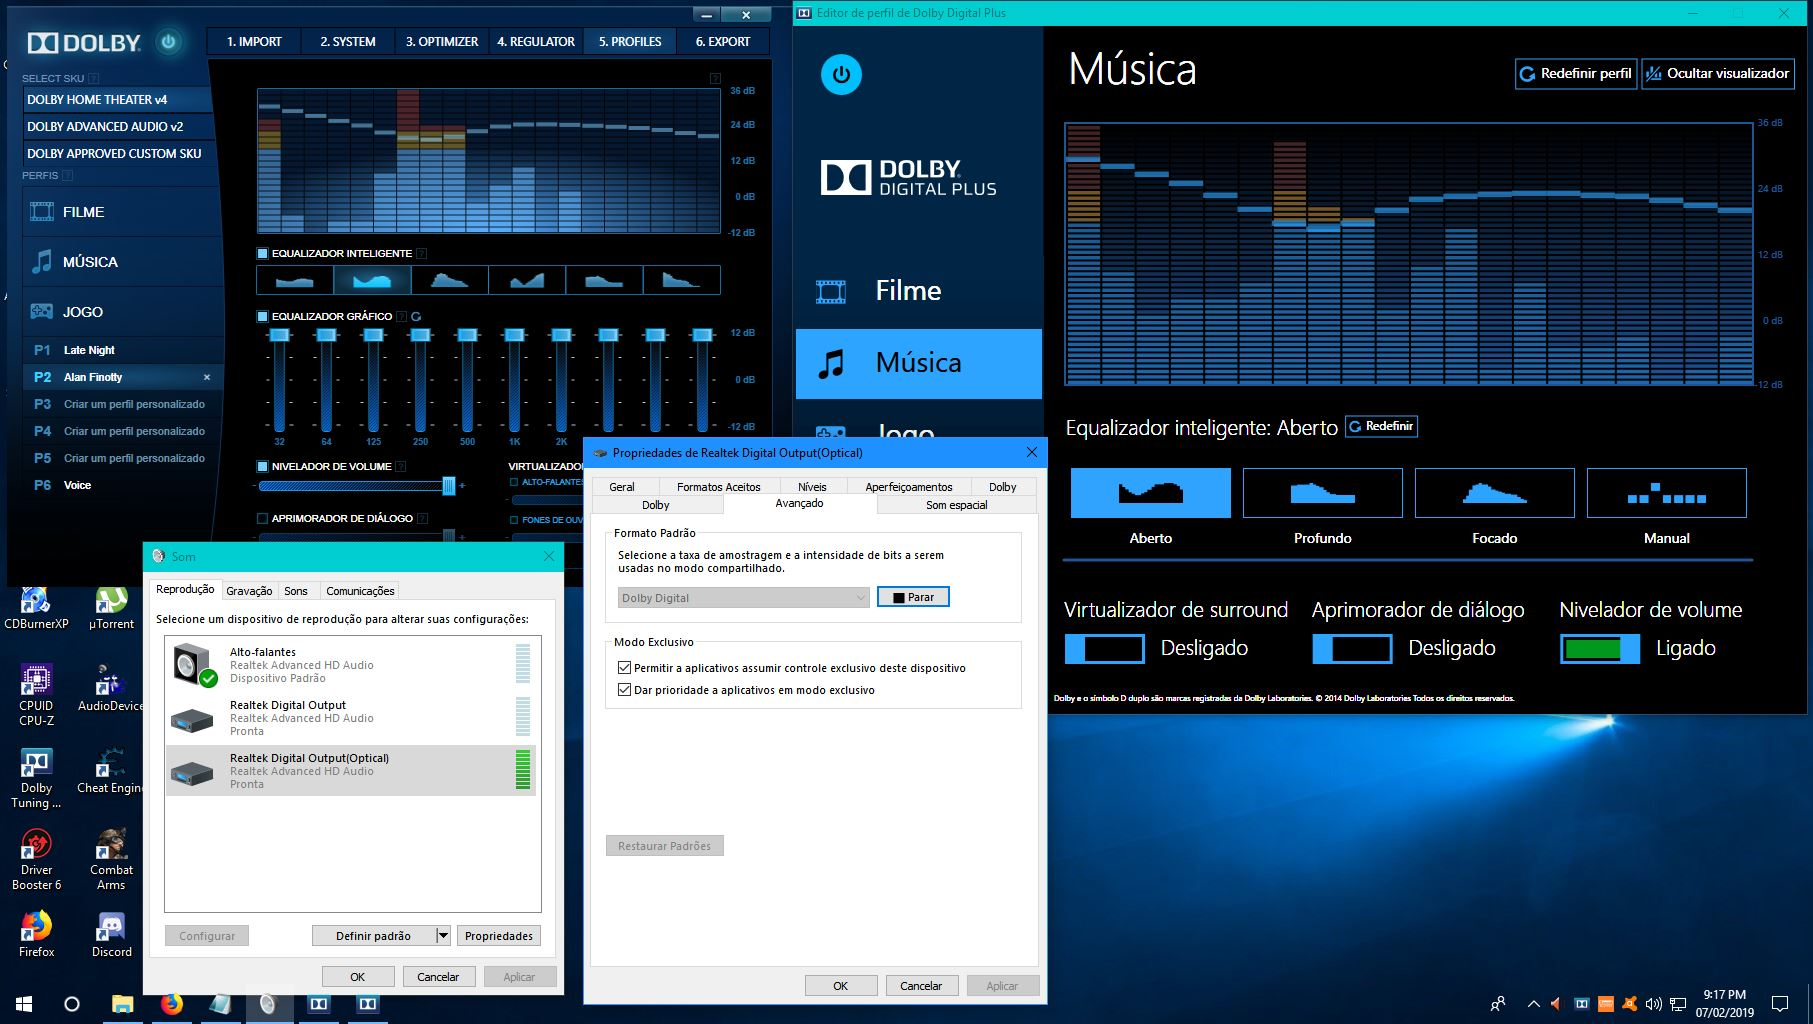 The Ultimate Realtek HD Audio Driver Mod for Windows 10 | Page 81